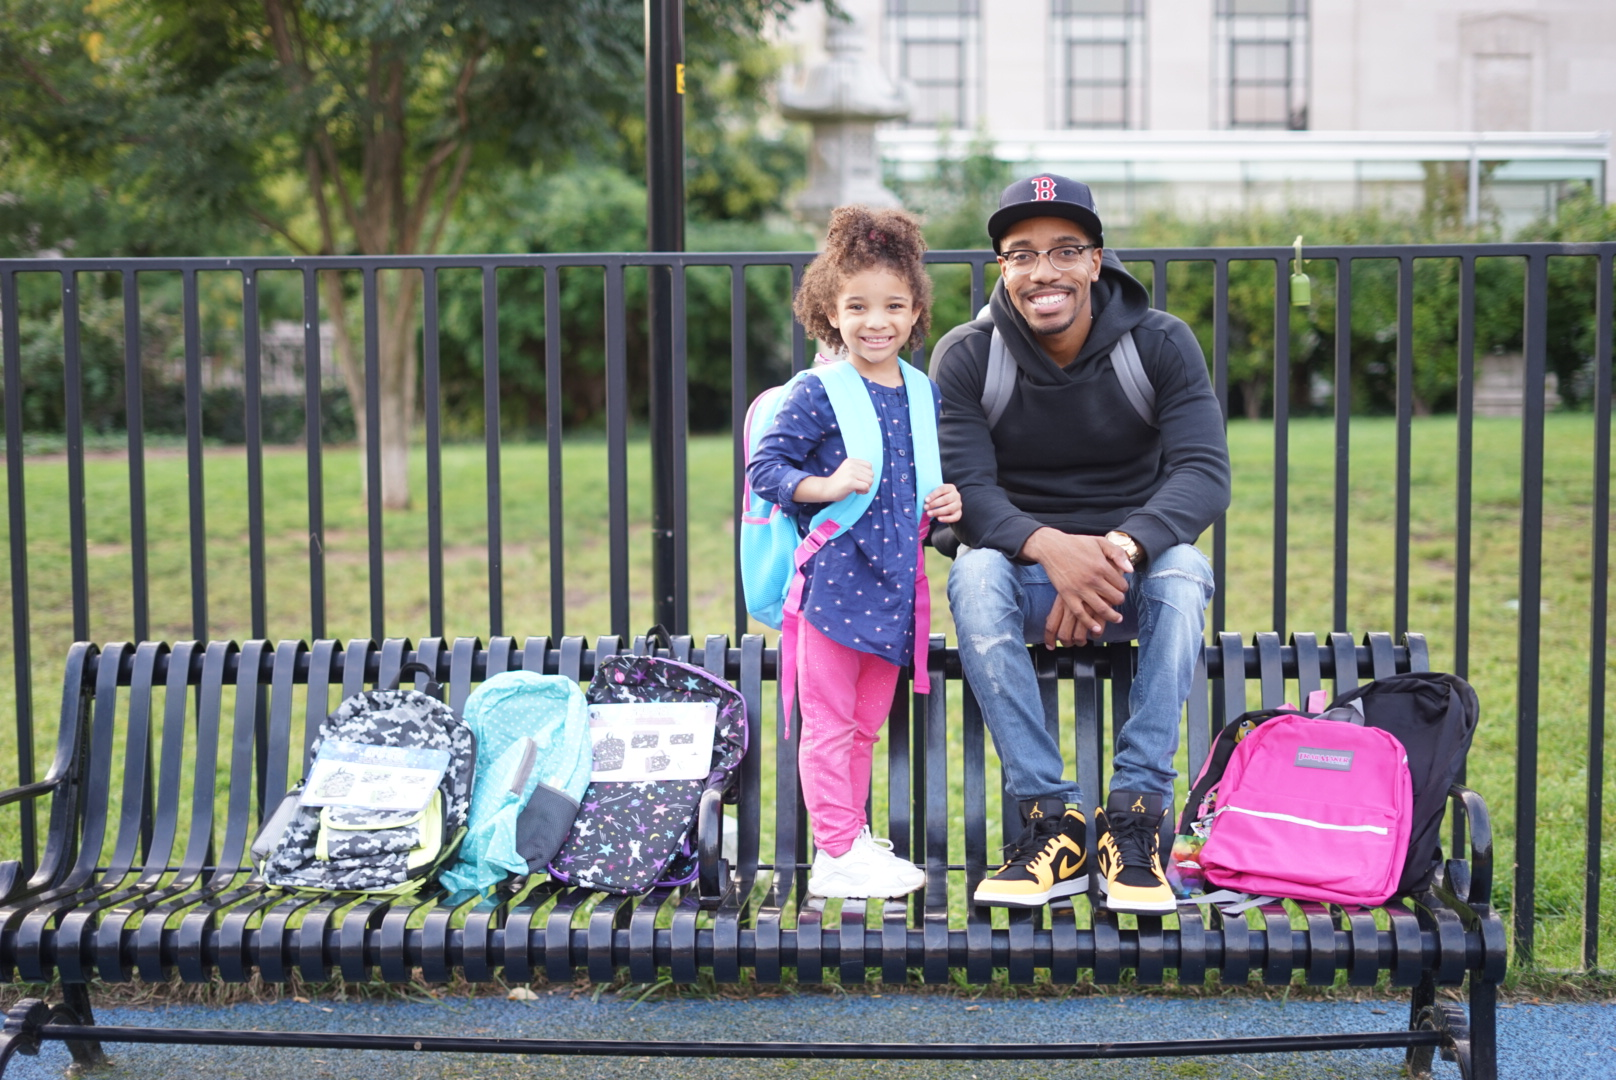 The Milli Blog sat down (and played in the park) with Mia & Matt about The BackPack Marathon and how they plan on touching more lives in their communities… -